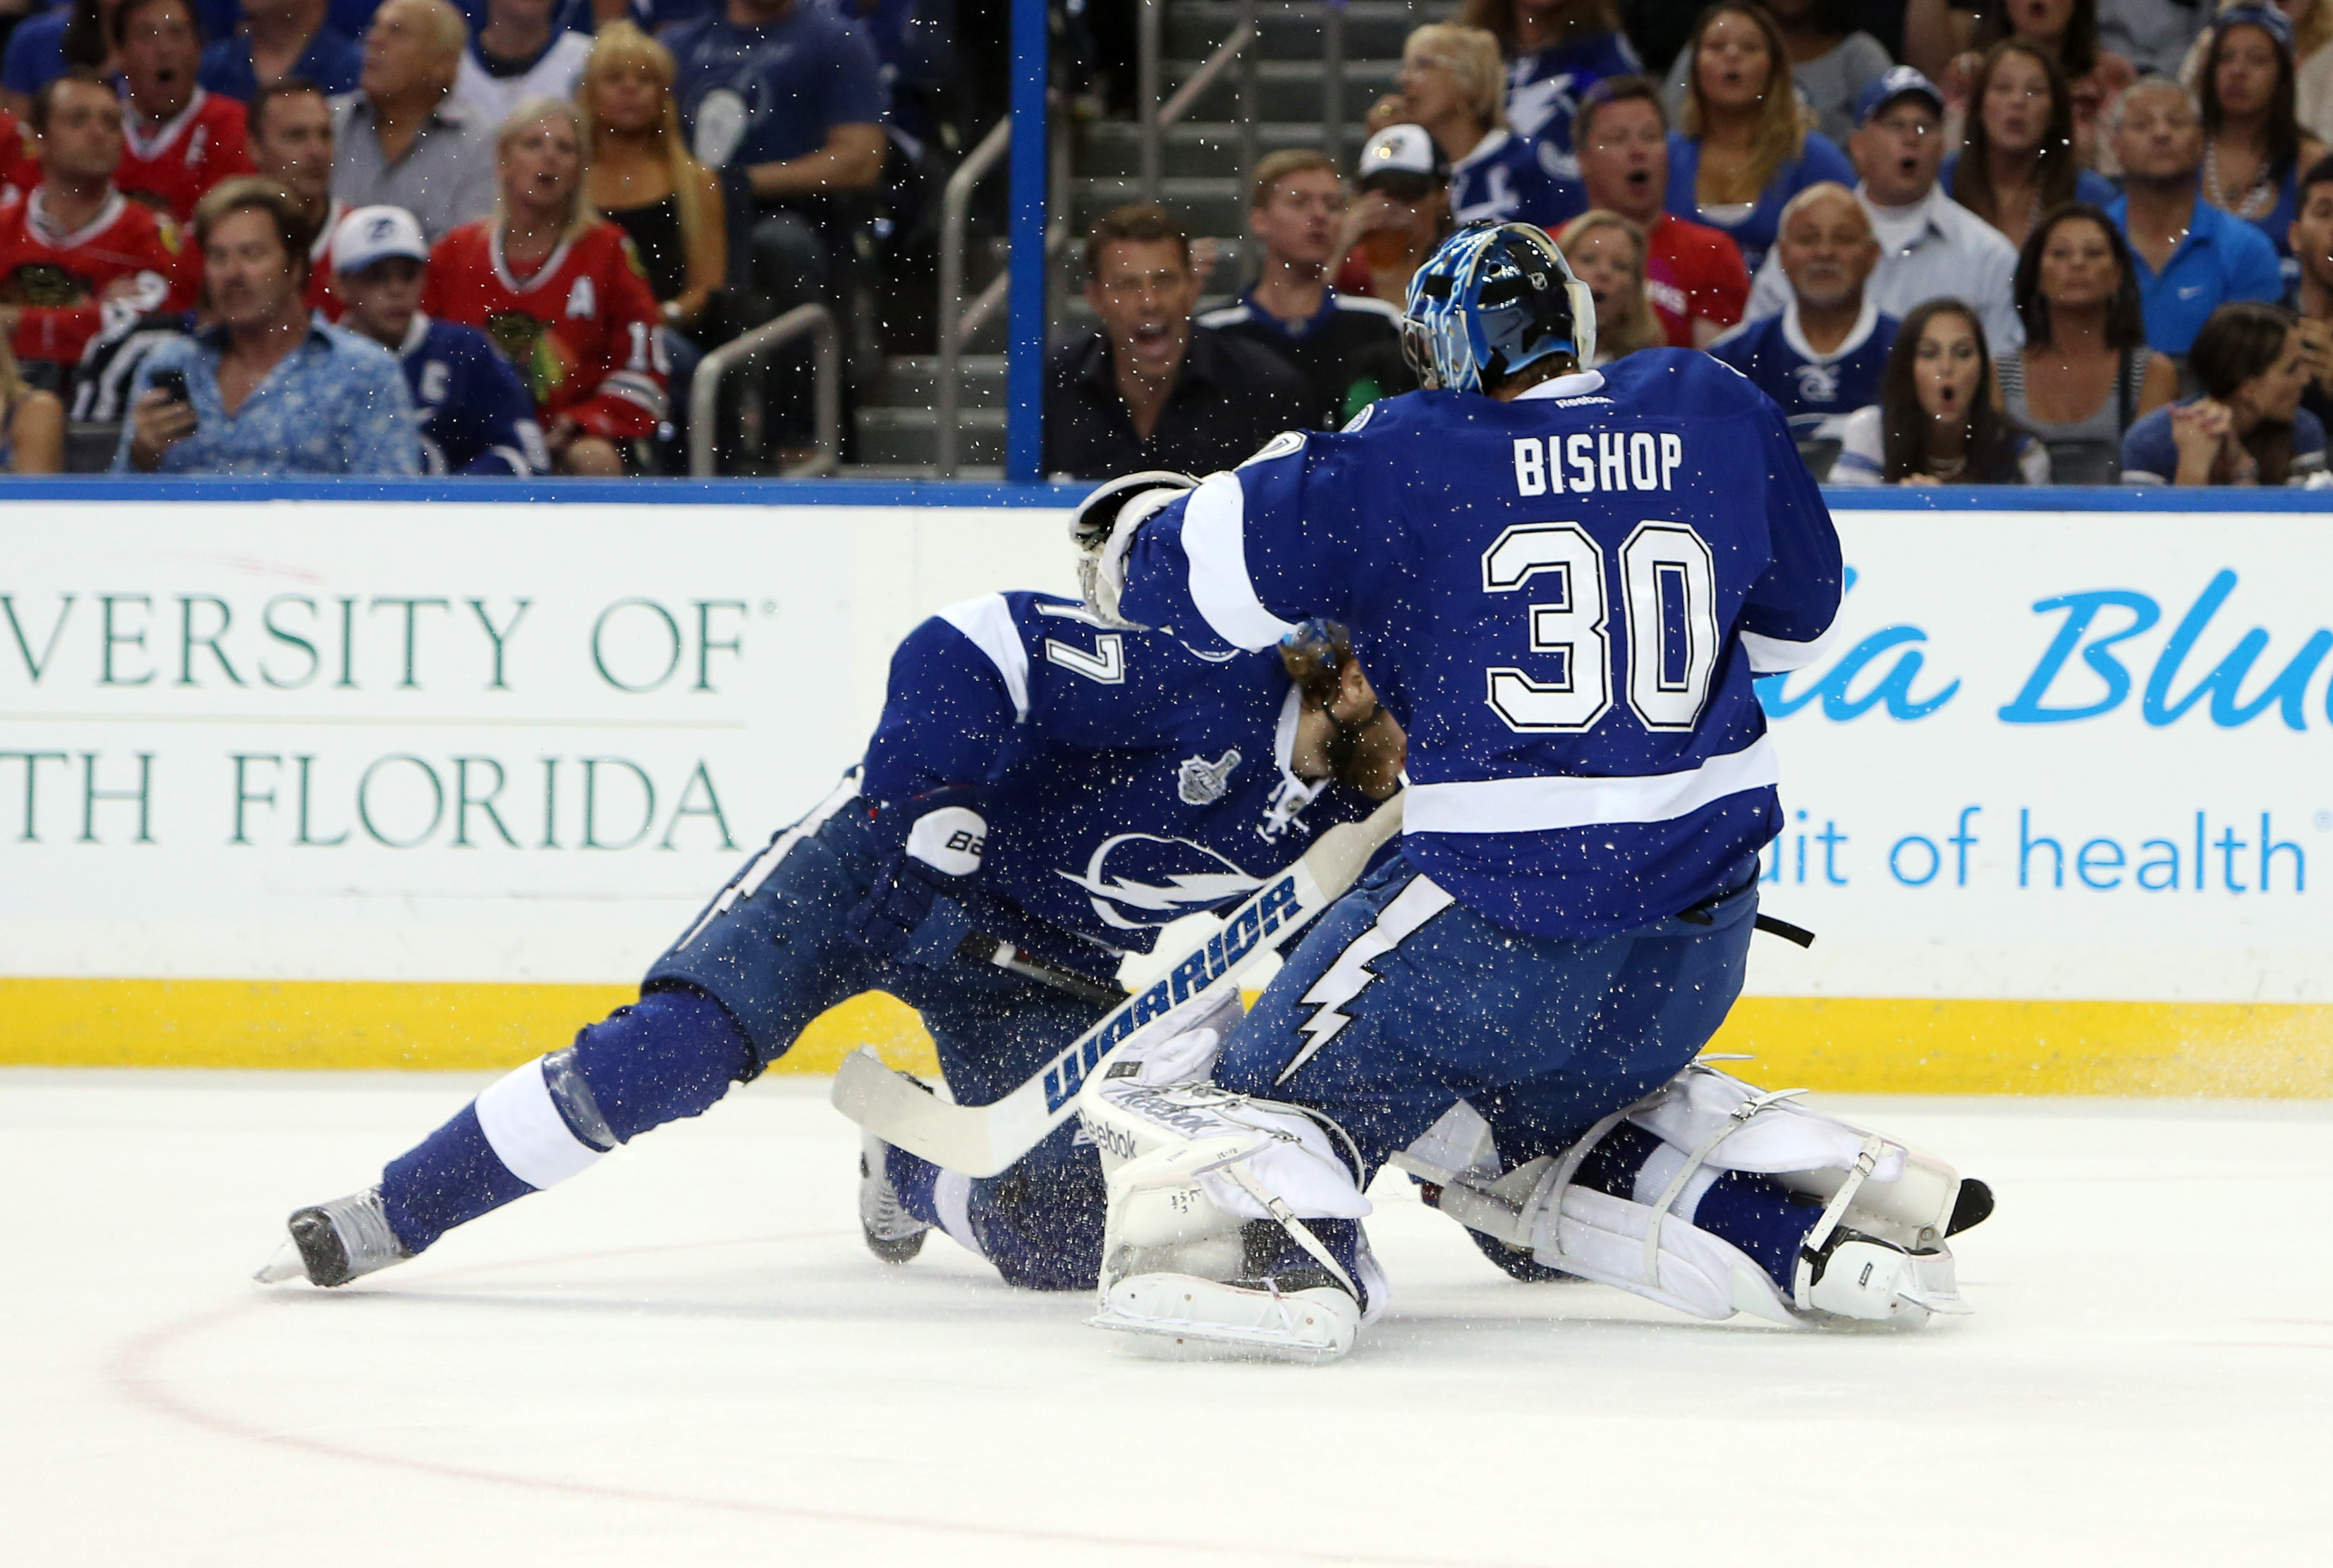 Victor Hedman and Ben Bishop colide, allowing Chicago's Patrick Sharpe to score in Tampa Bay's 2-1 loss in Game 5 of the 2015 NHL Stanley Cup Final.